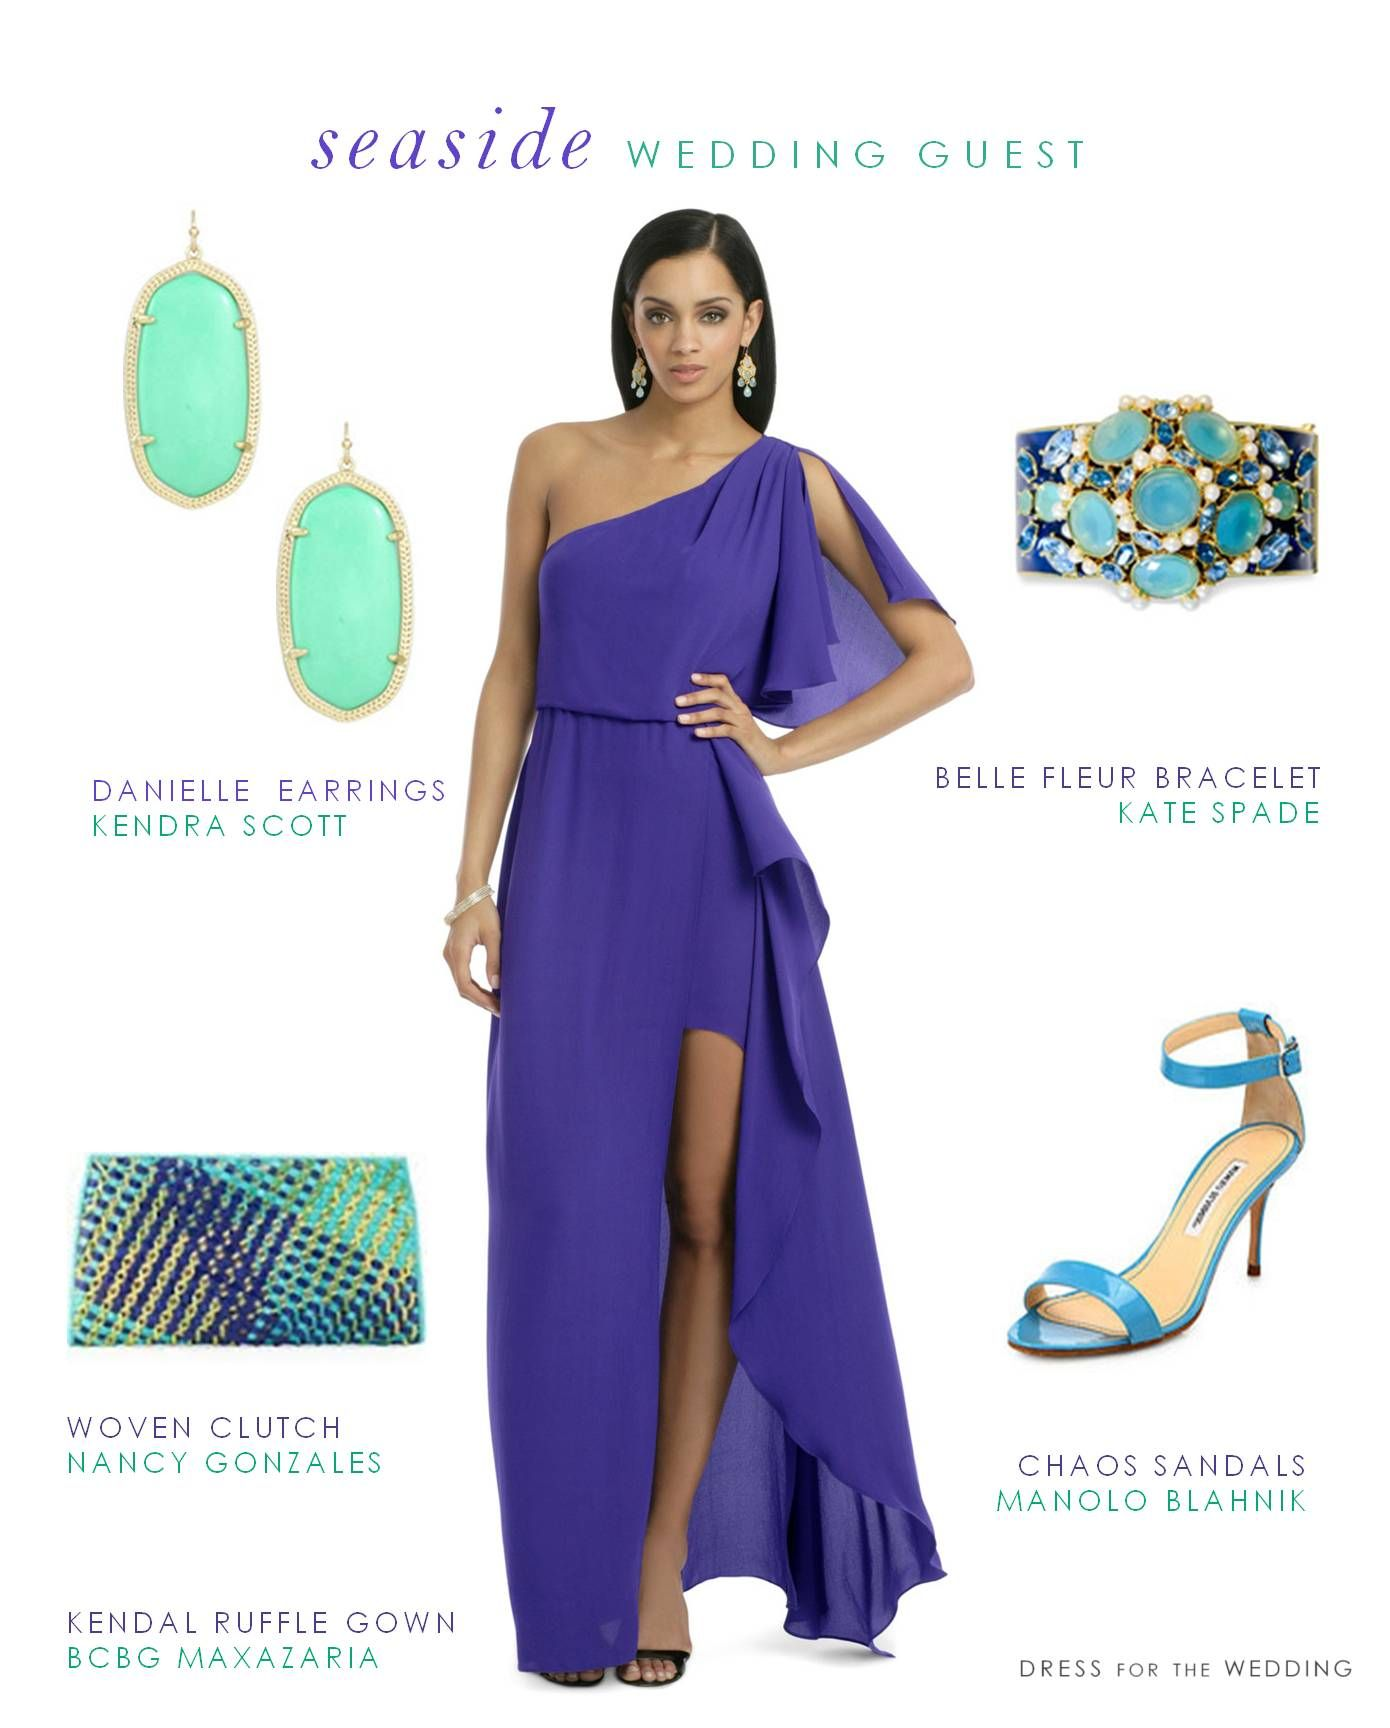 What To Wear To A Summer Seaside Wedding Summer Wedding Guest Dresses Wedding Attire Guest Guest Attire Guest Outfit